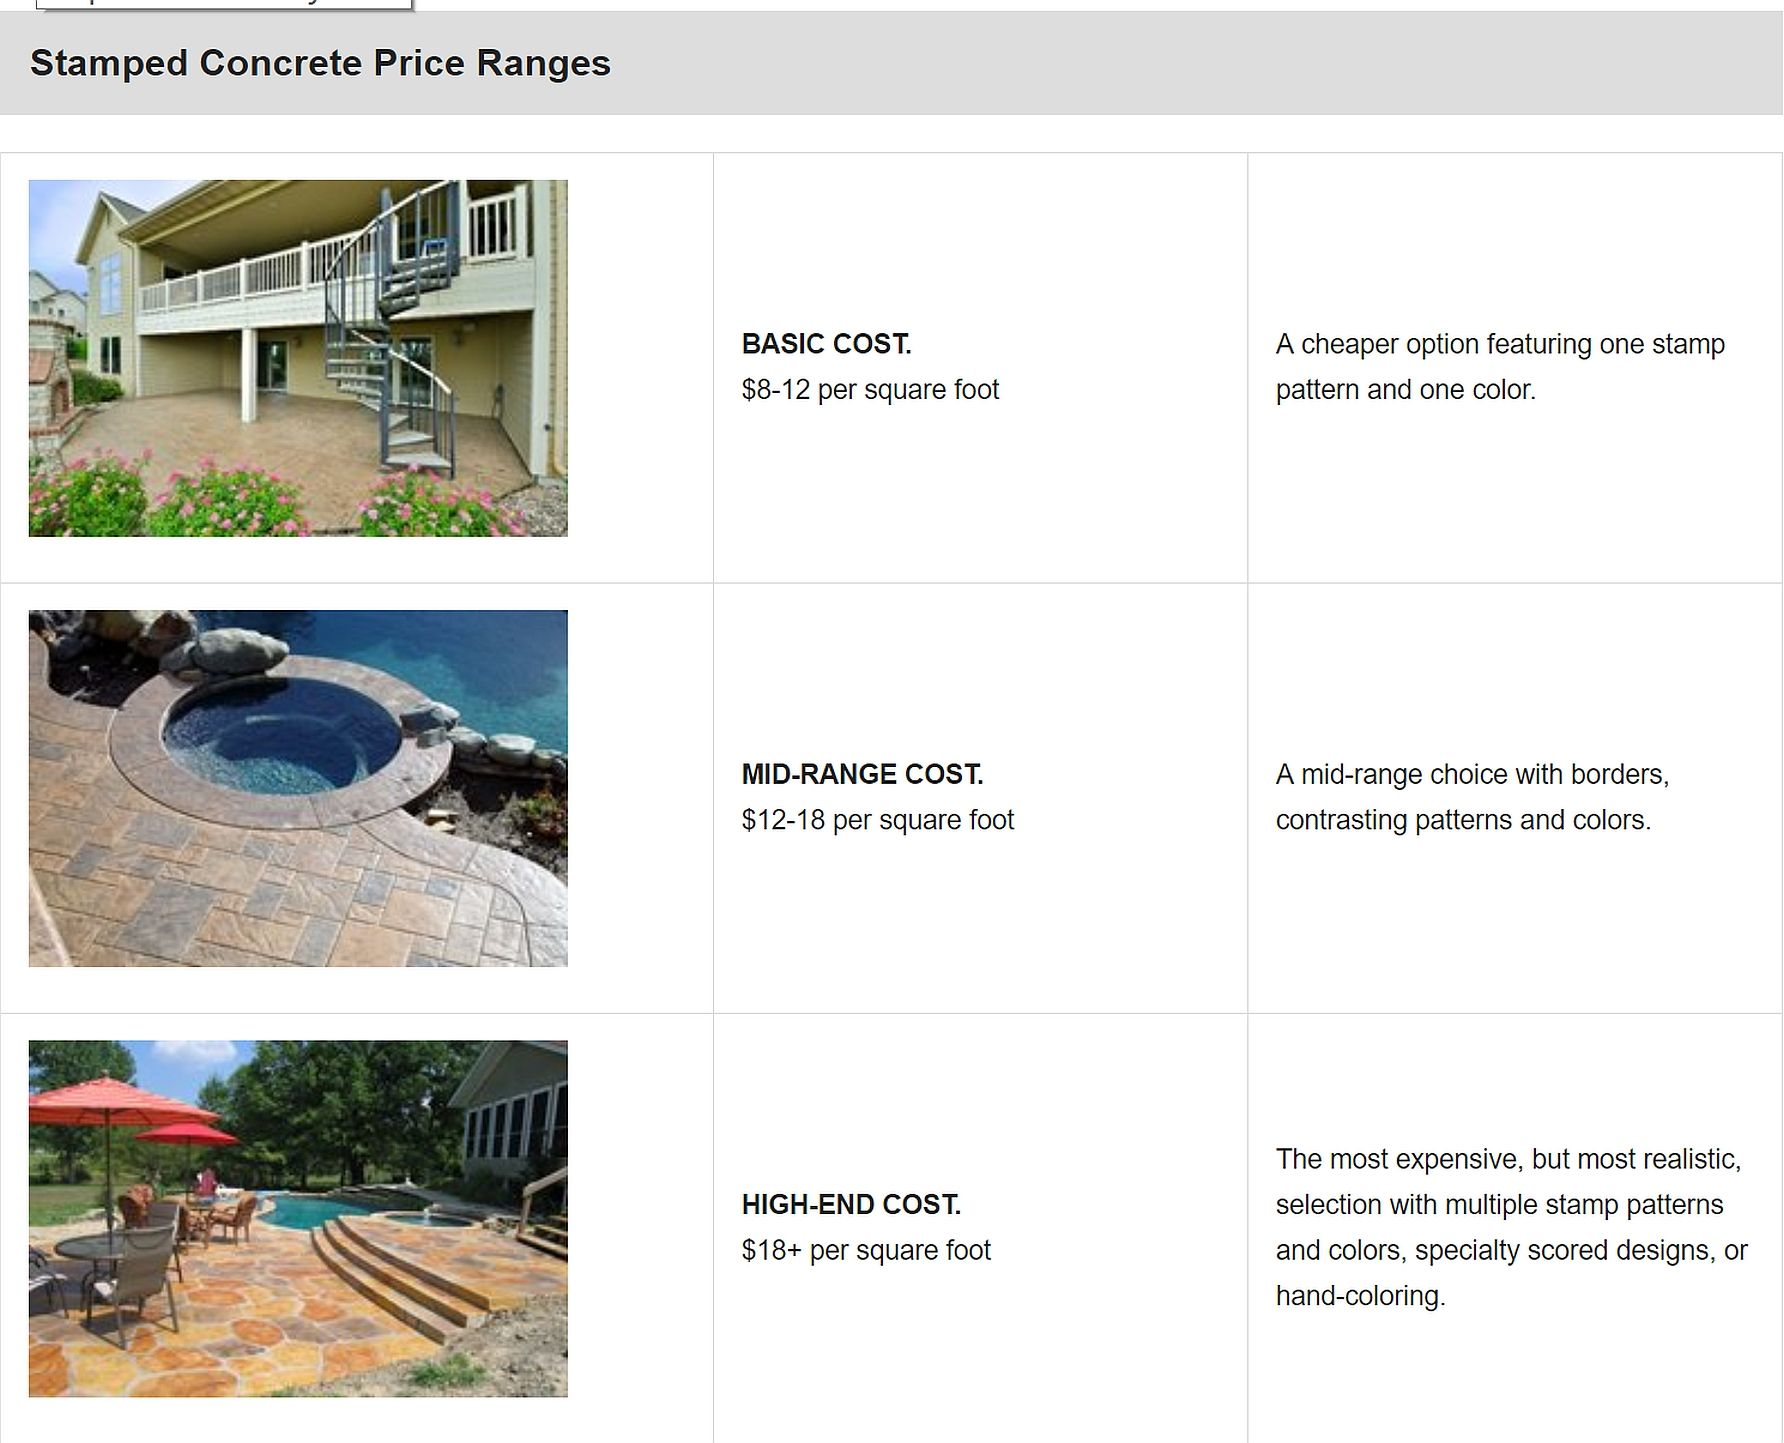 Pricing For Stamped Concrete Pricing Is Based On Location Style